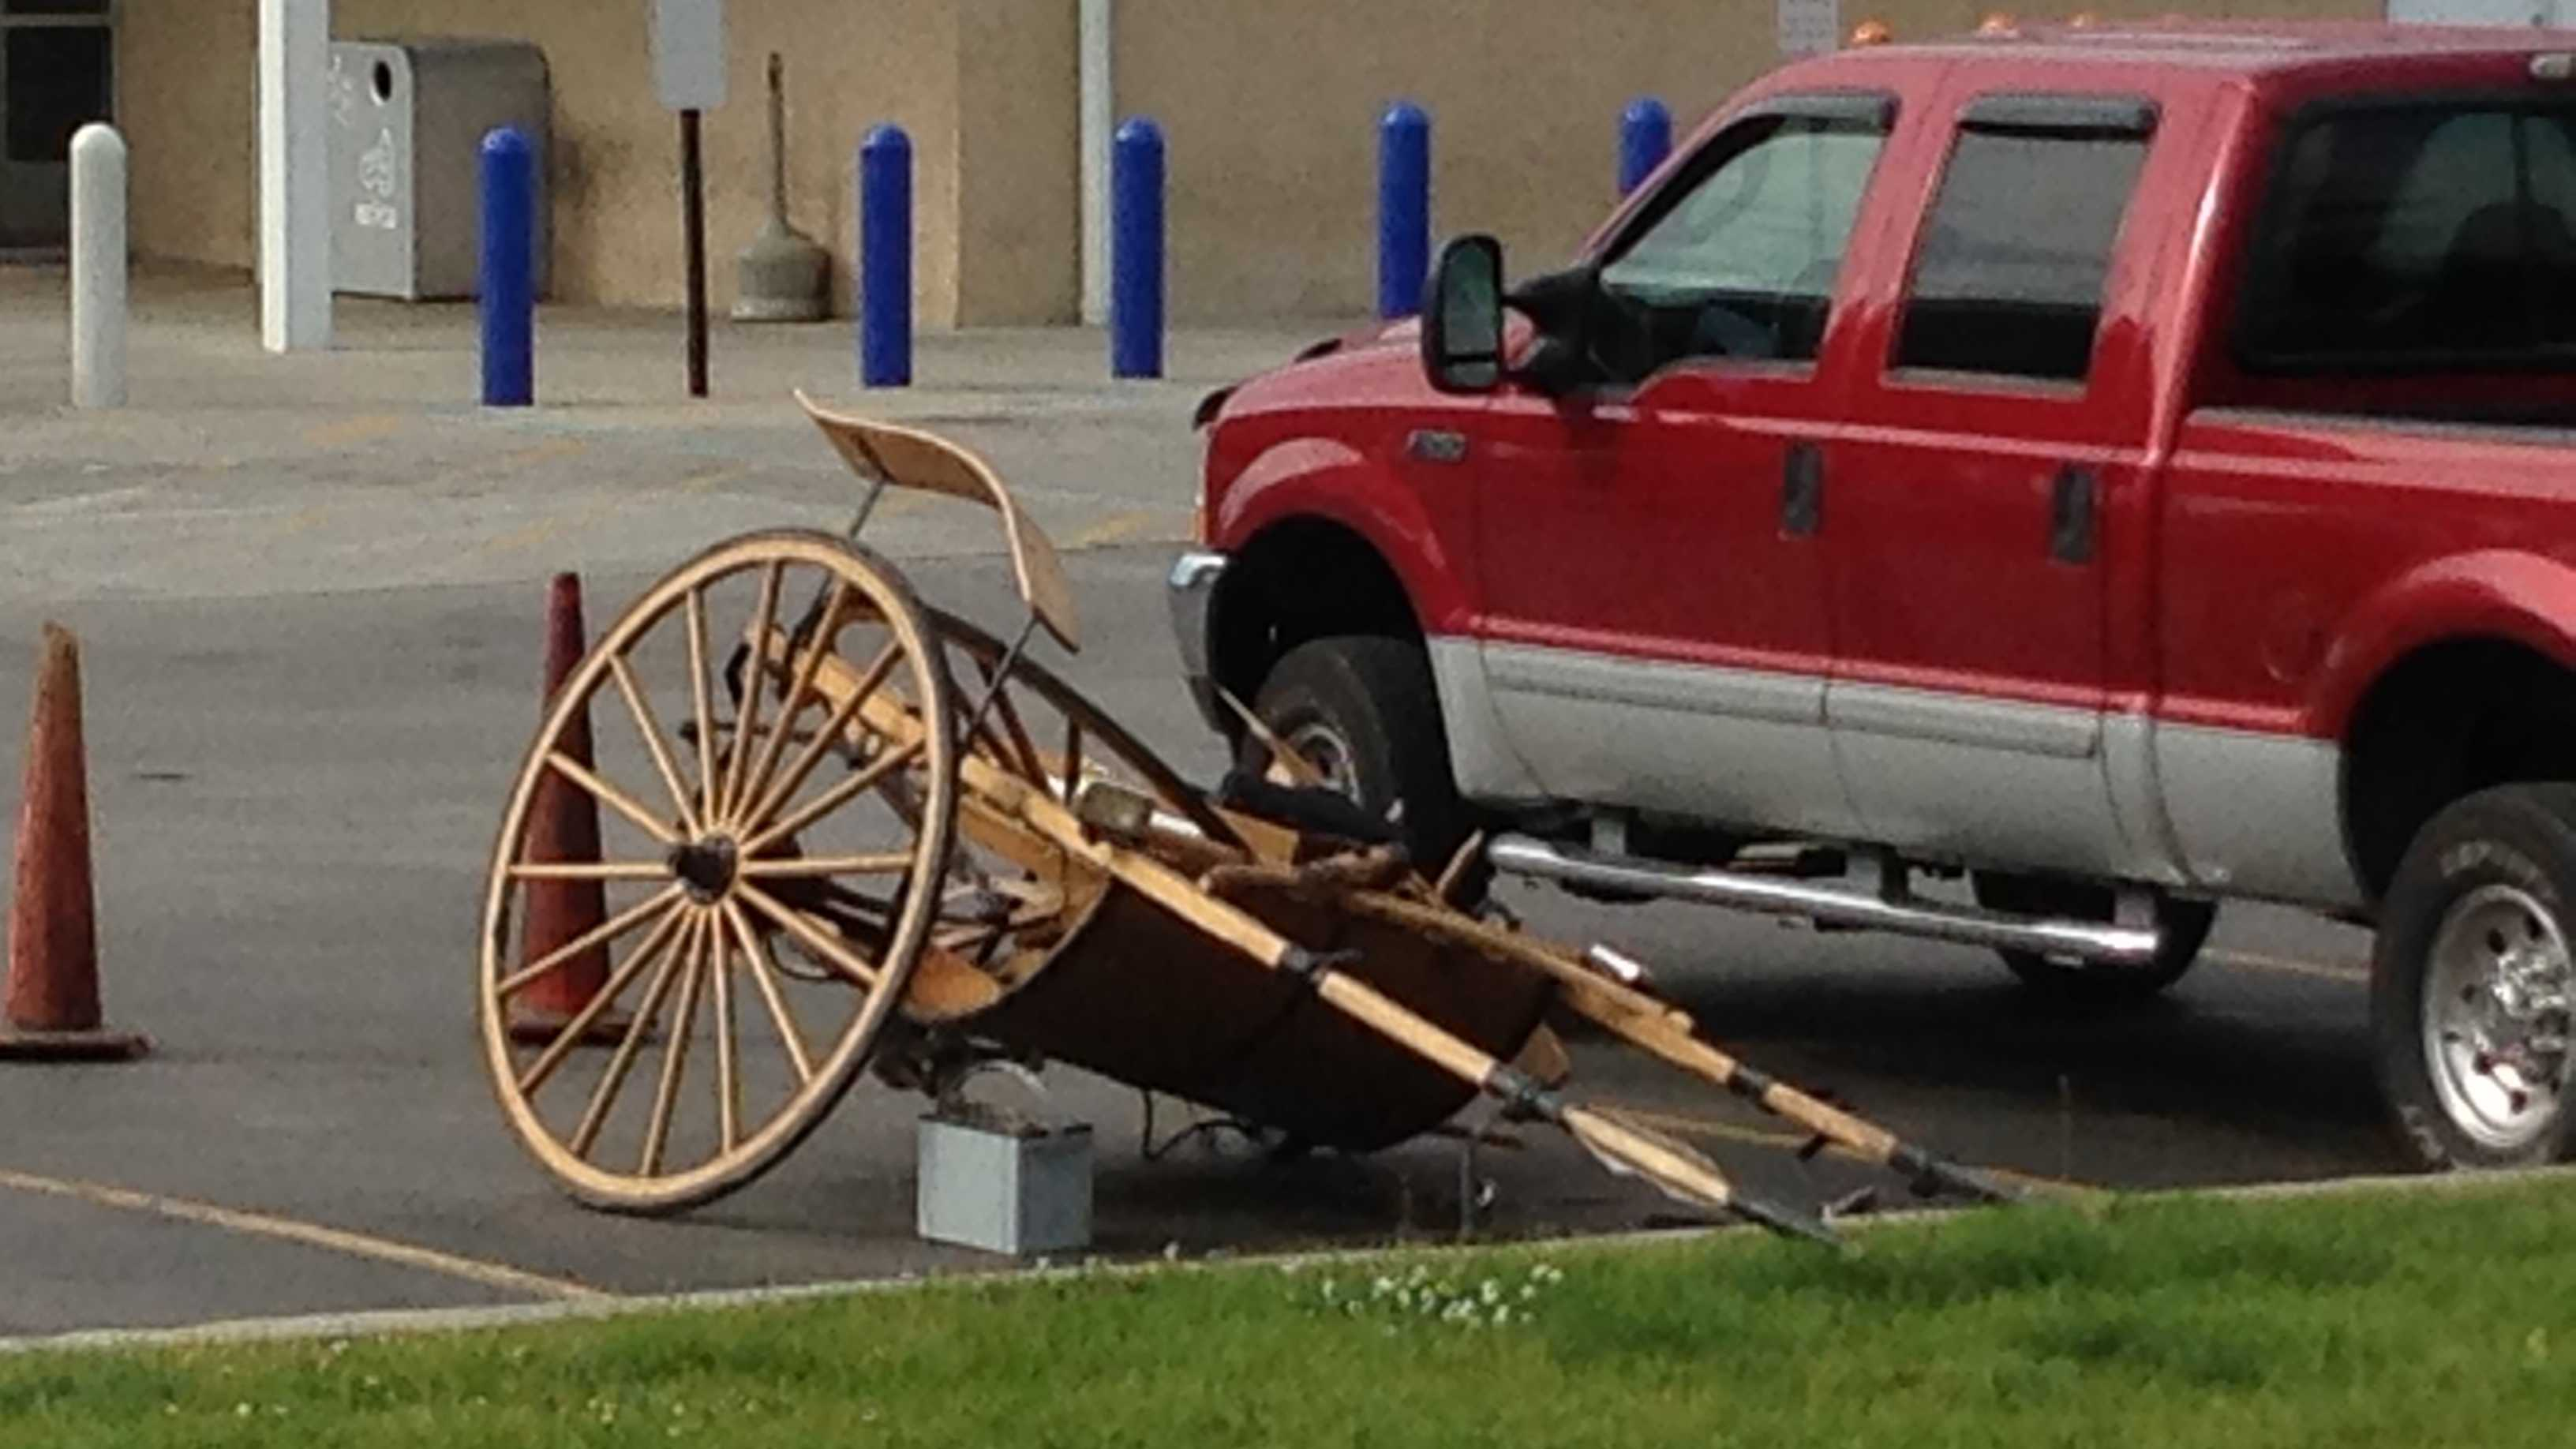 Parts of the buggy remain at the scene.